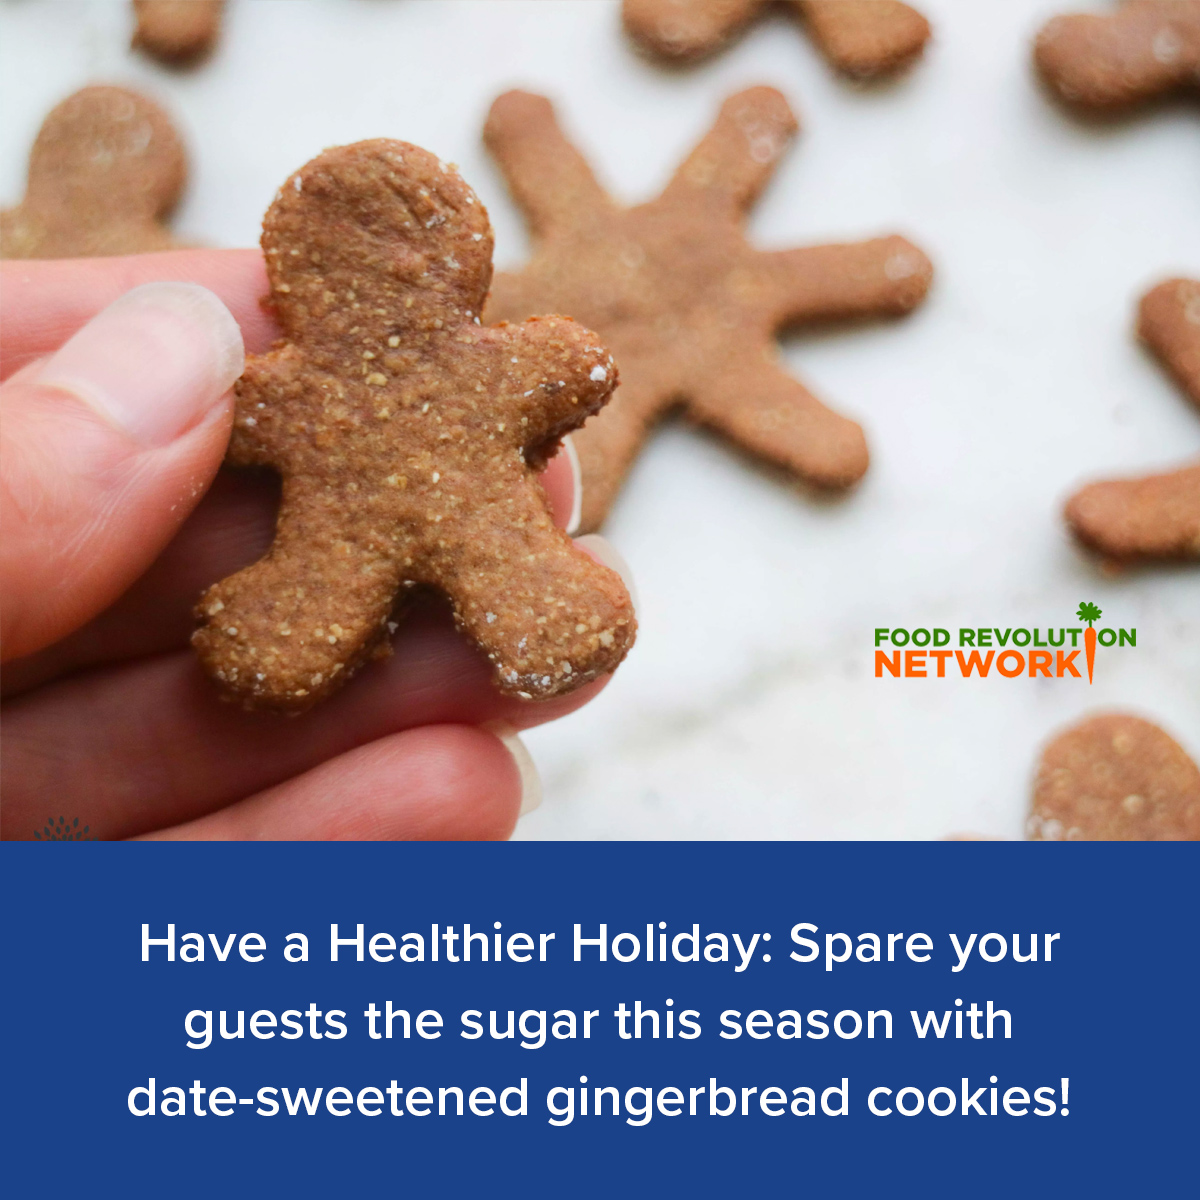 Have a Healthier Holiday: Spare your guests the sugar this season with date-sweetened gingerbread cookies!